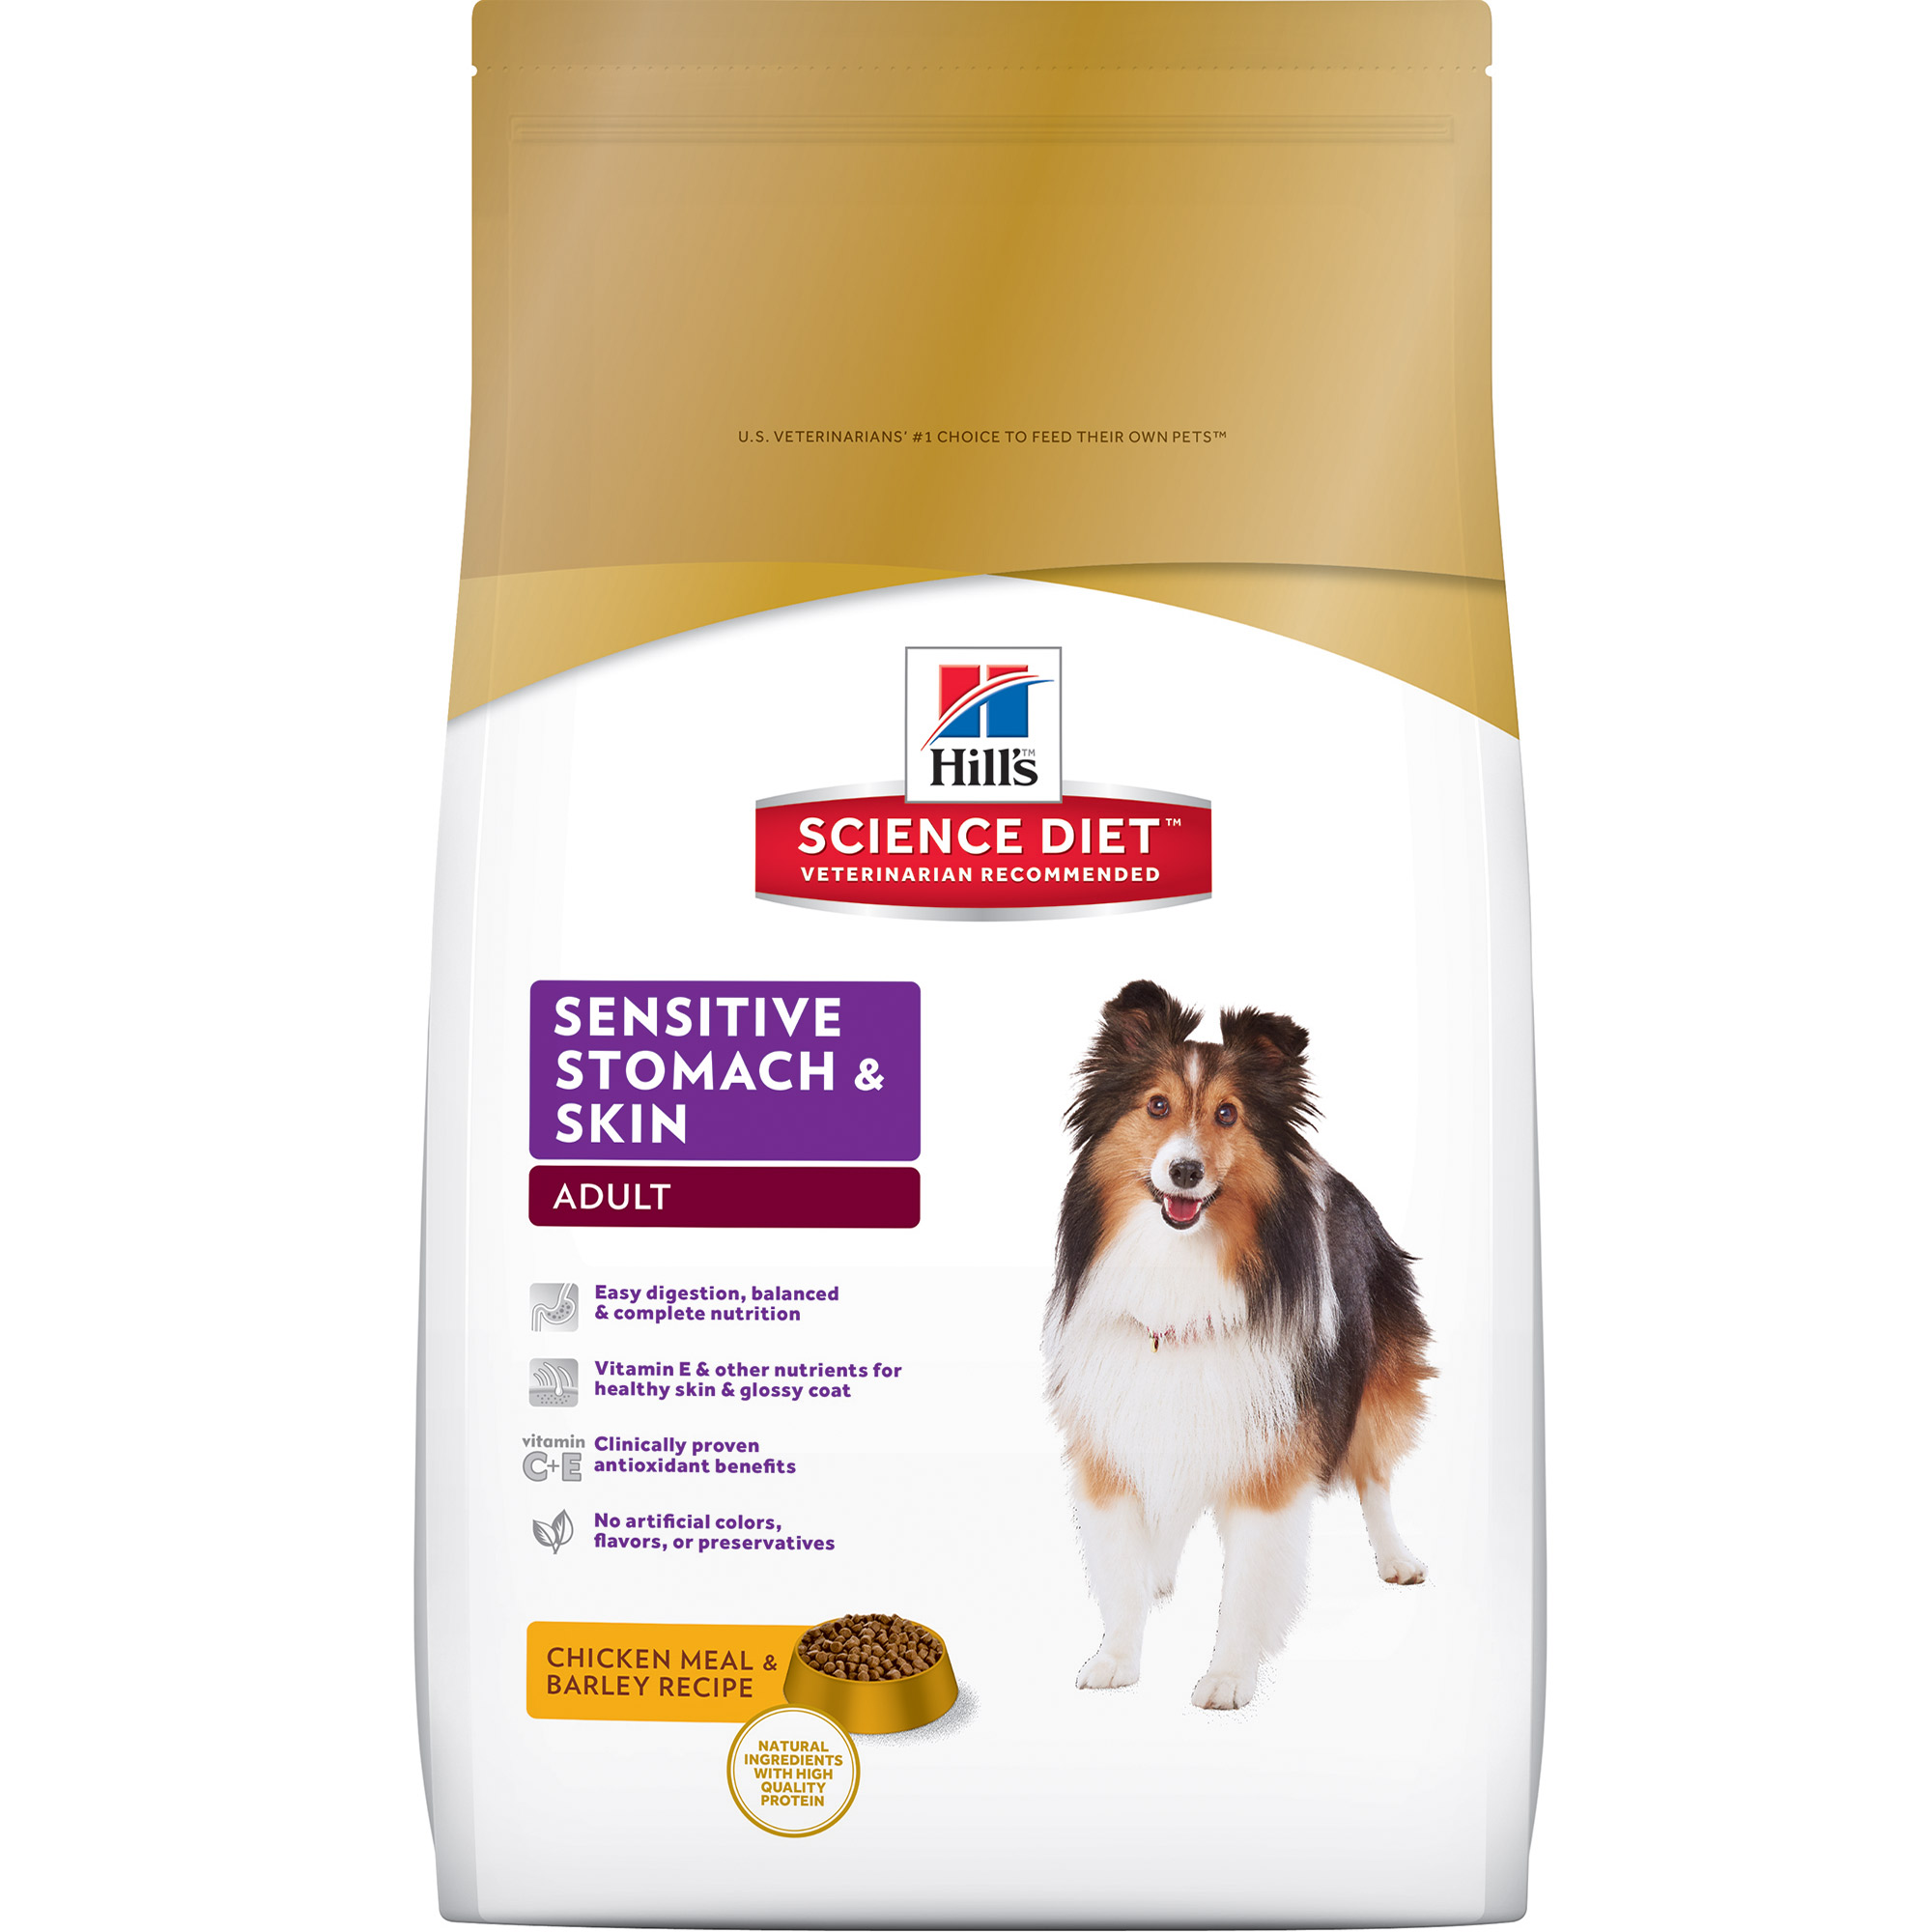 Hill's Science Diet (Get $5 back for every $20 spent) Adult Sensitive Stomach & Skin Chicken Meal & Barley Recipe Dry Dog Food, 30 lb bag